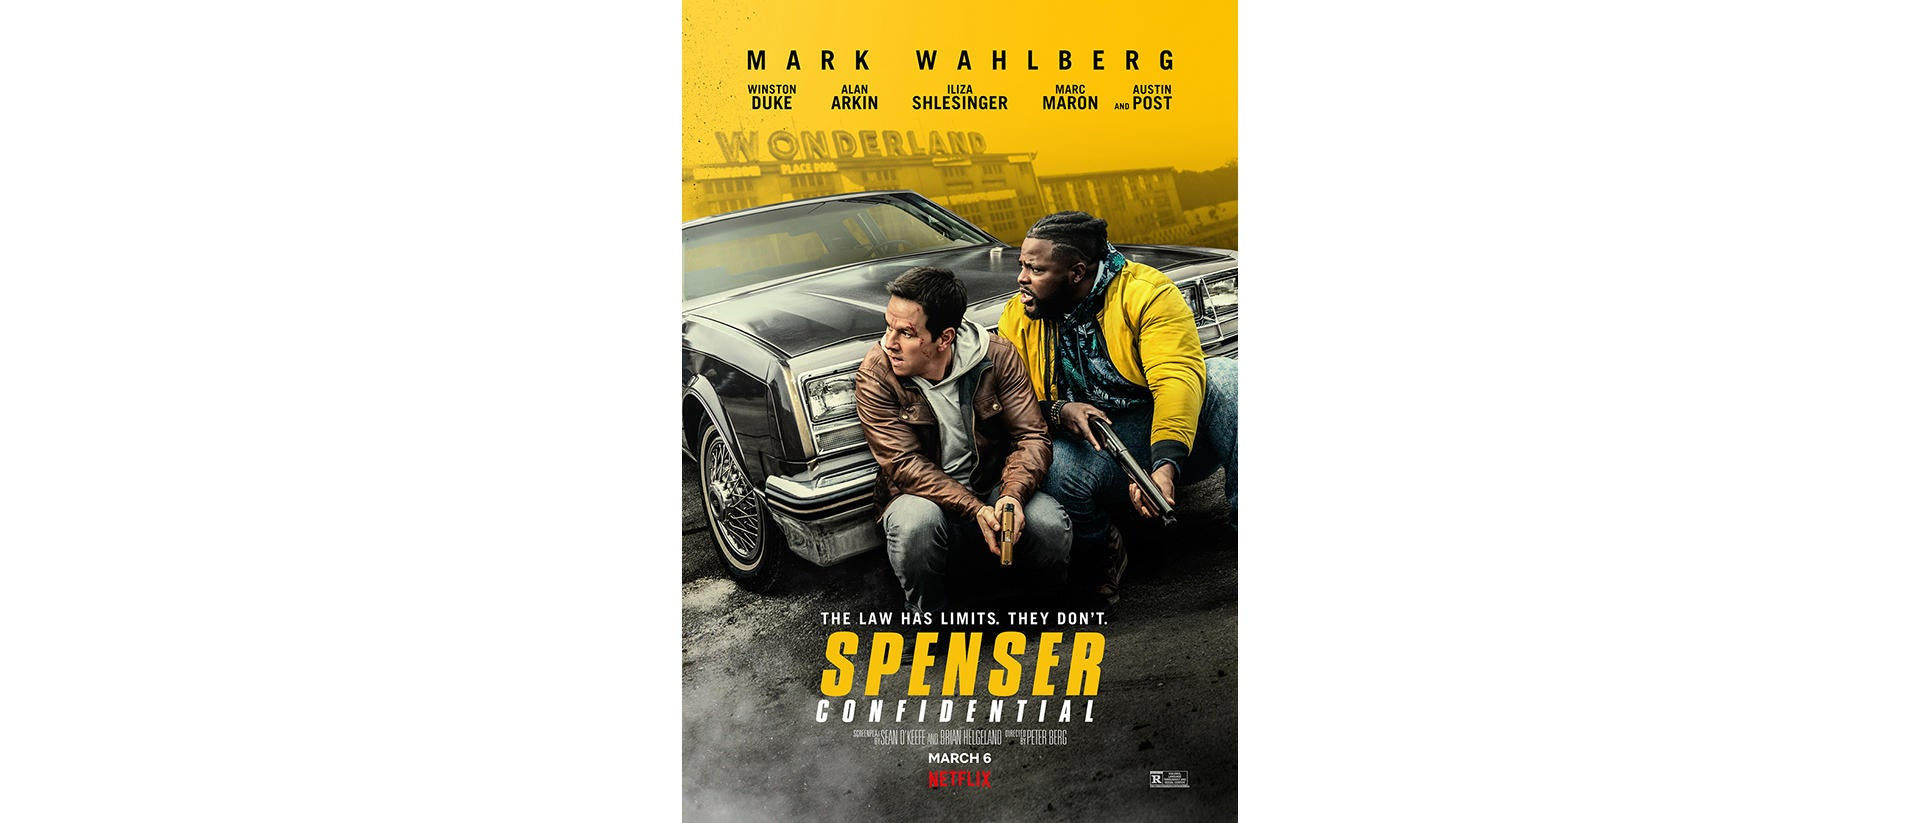 Official Trailer Spenser Confidential With Mark Wahlberg Shot On Venice Sony Cine